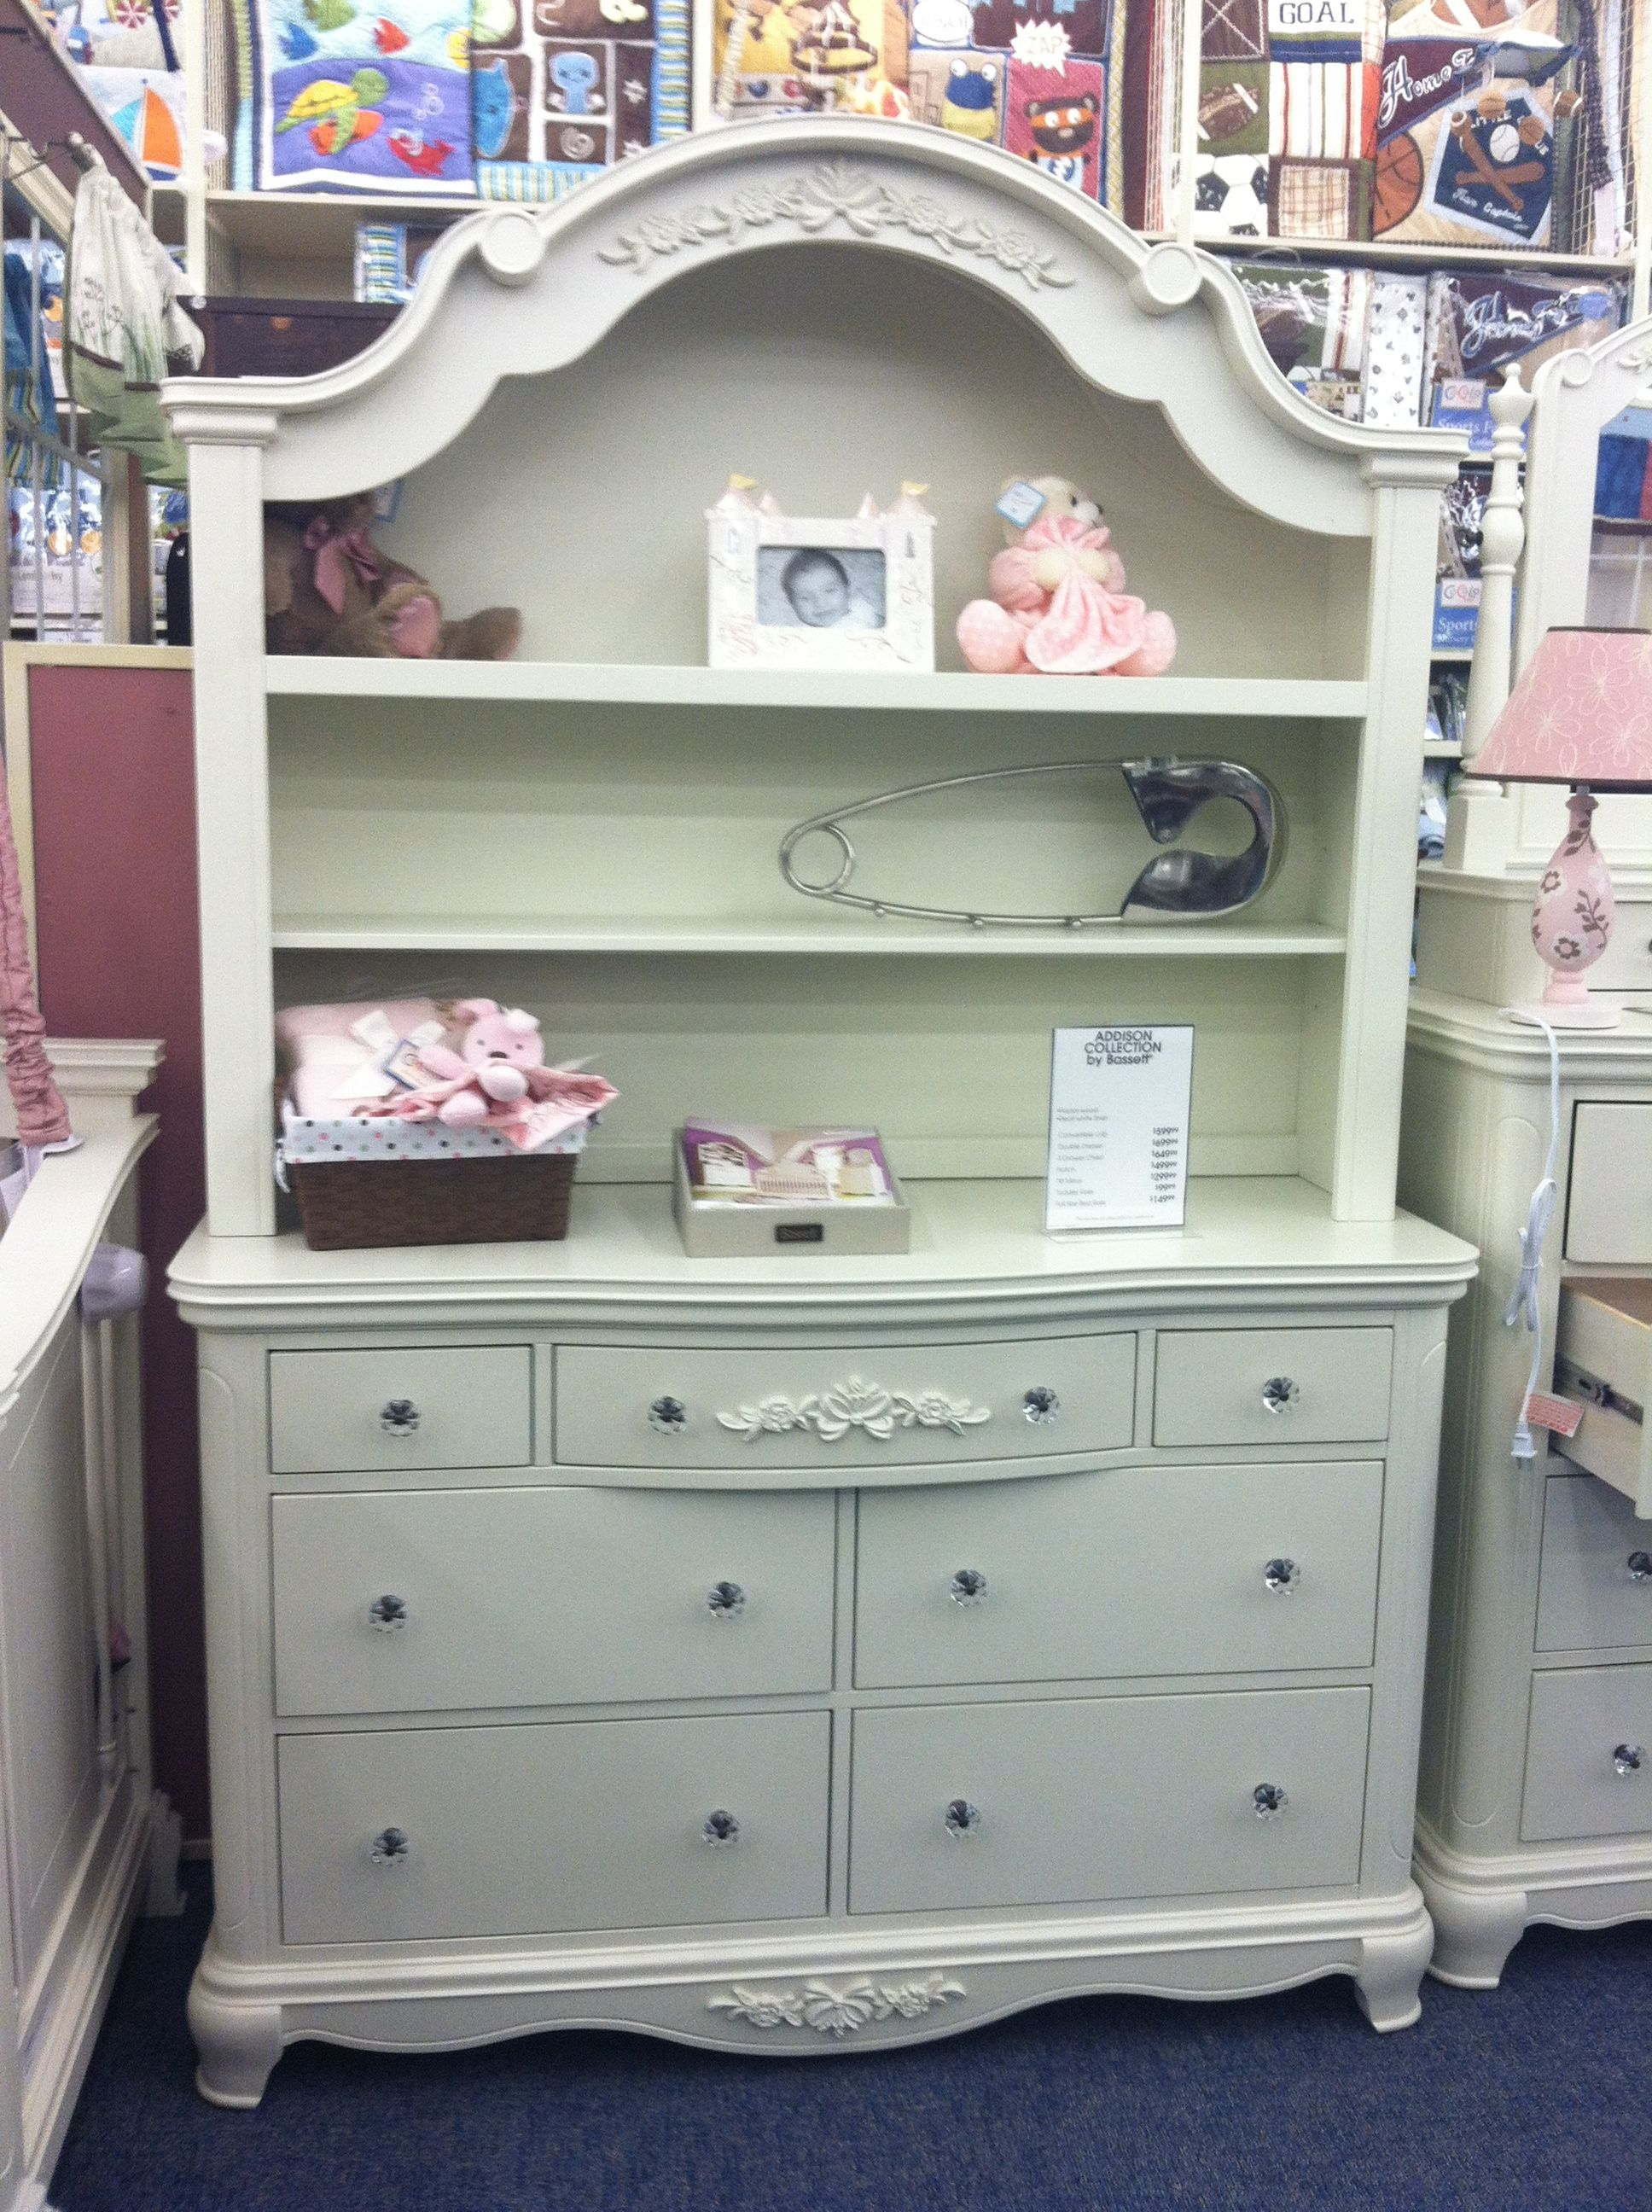 Dresser changing table no hutch lilliana